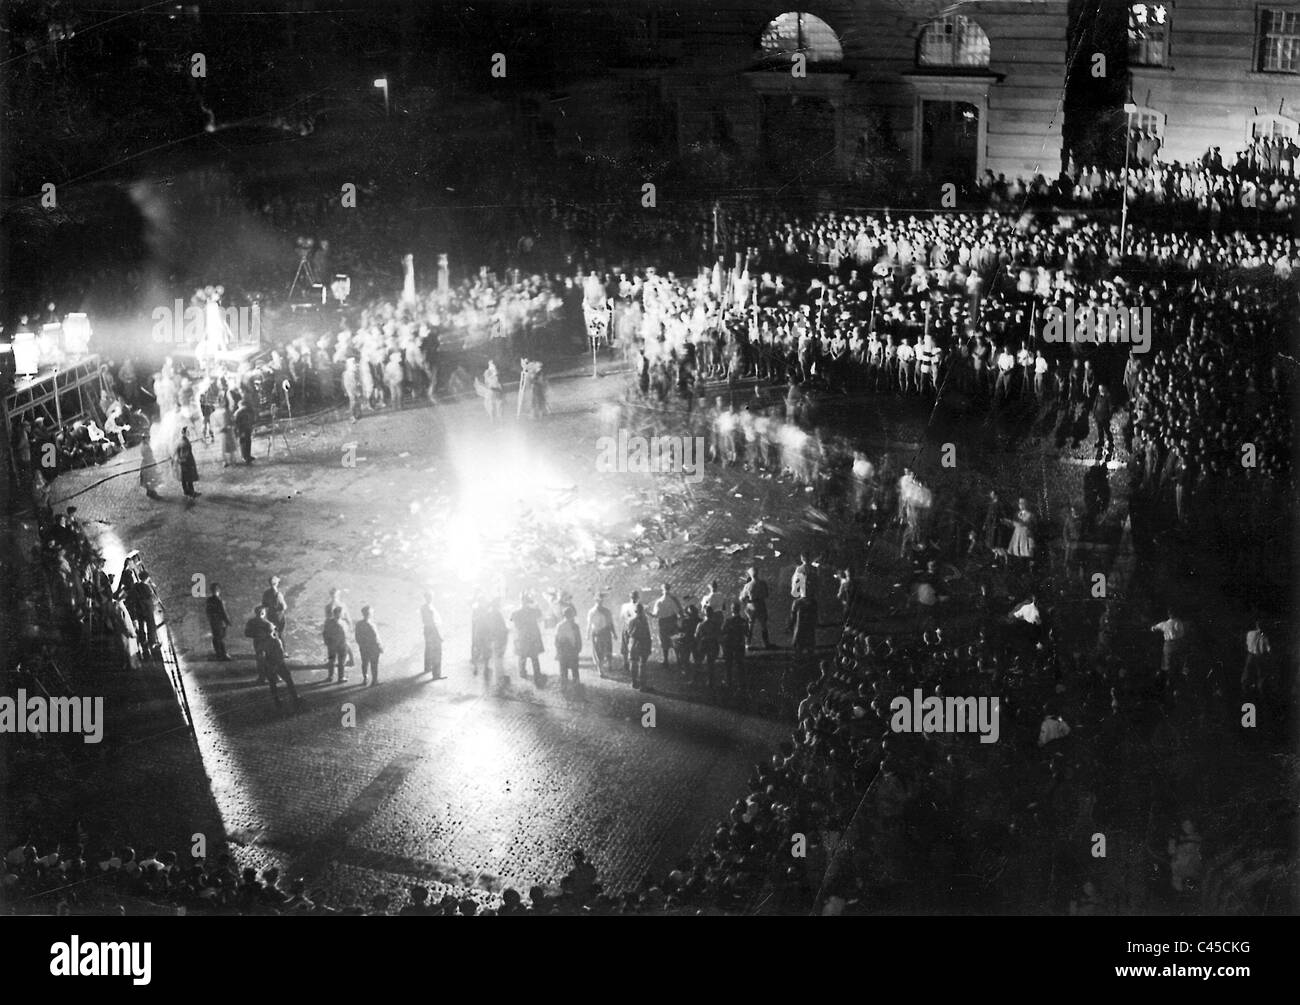 Image result for the platz in berlin where the book burning took place